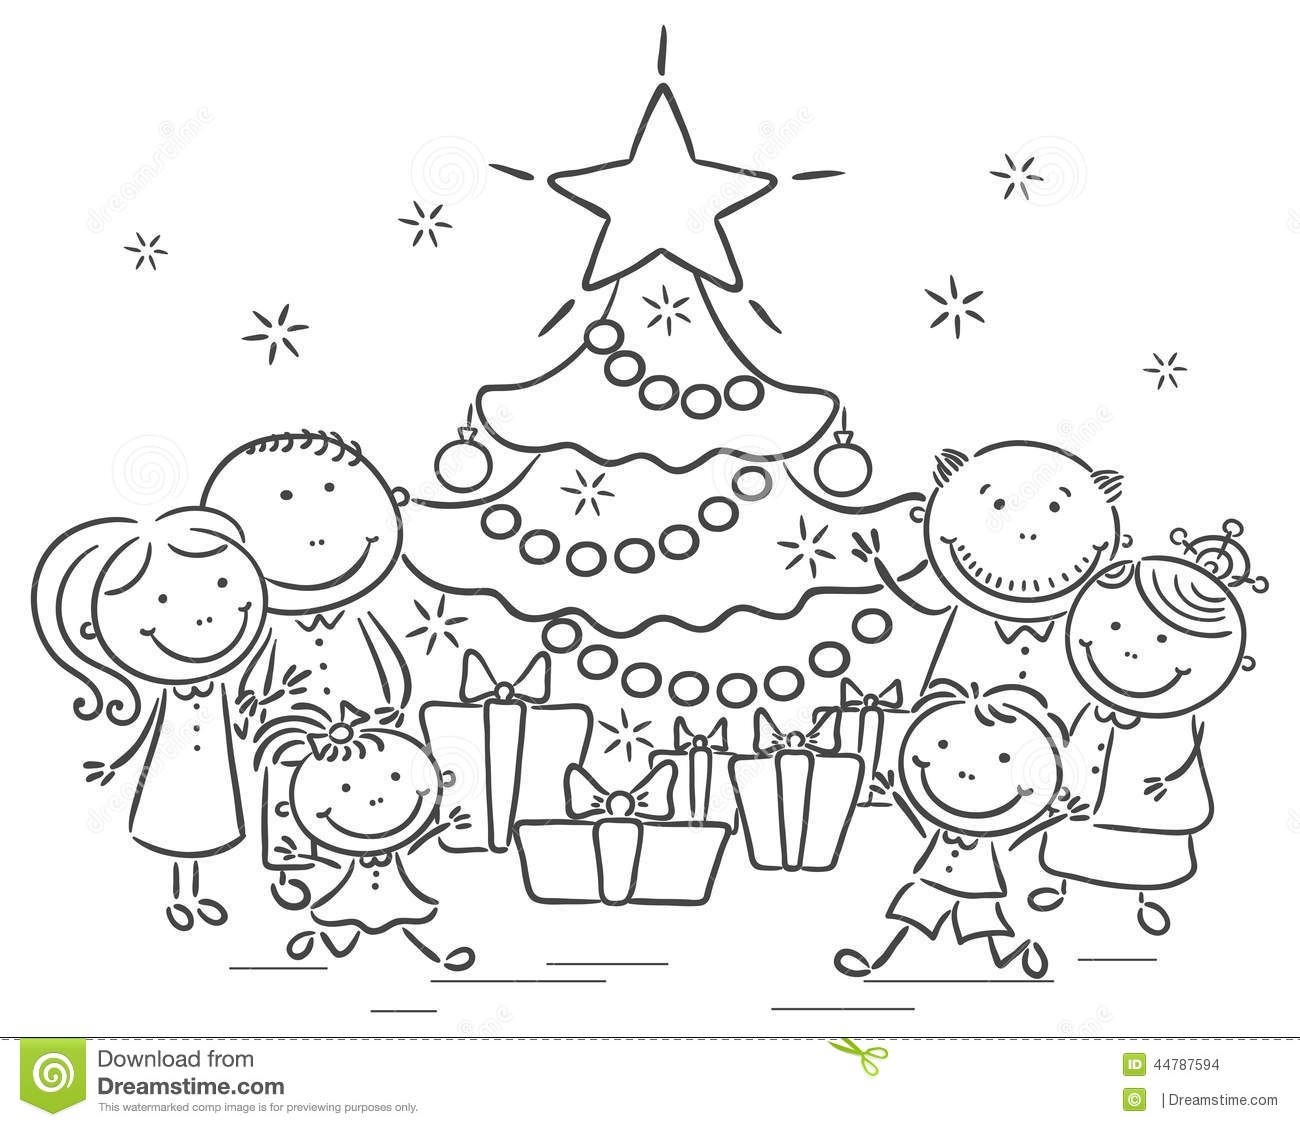 Christmas celebration clipart black and white » Clipart ... (1300 x 1127 Pixel)